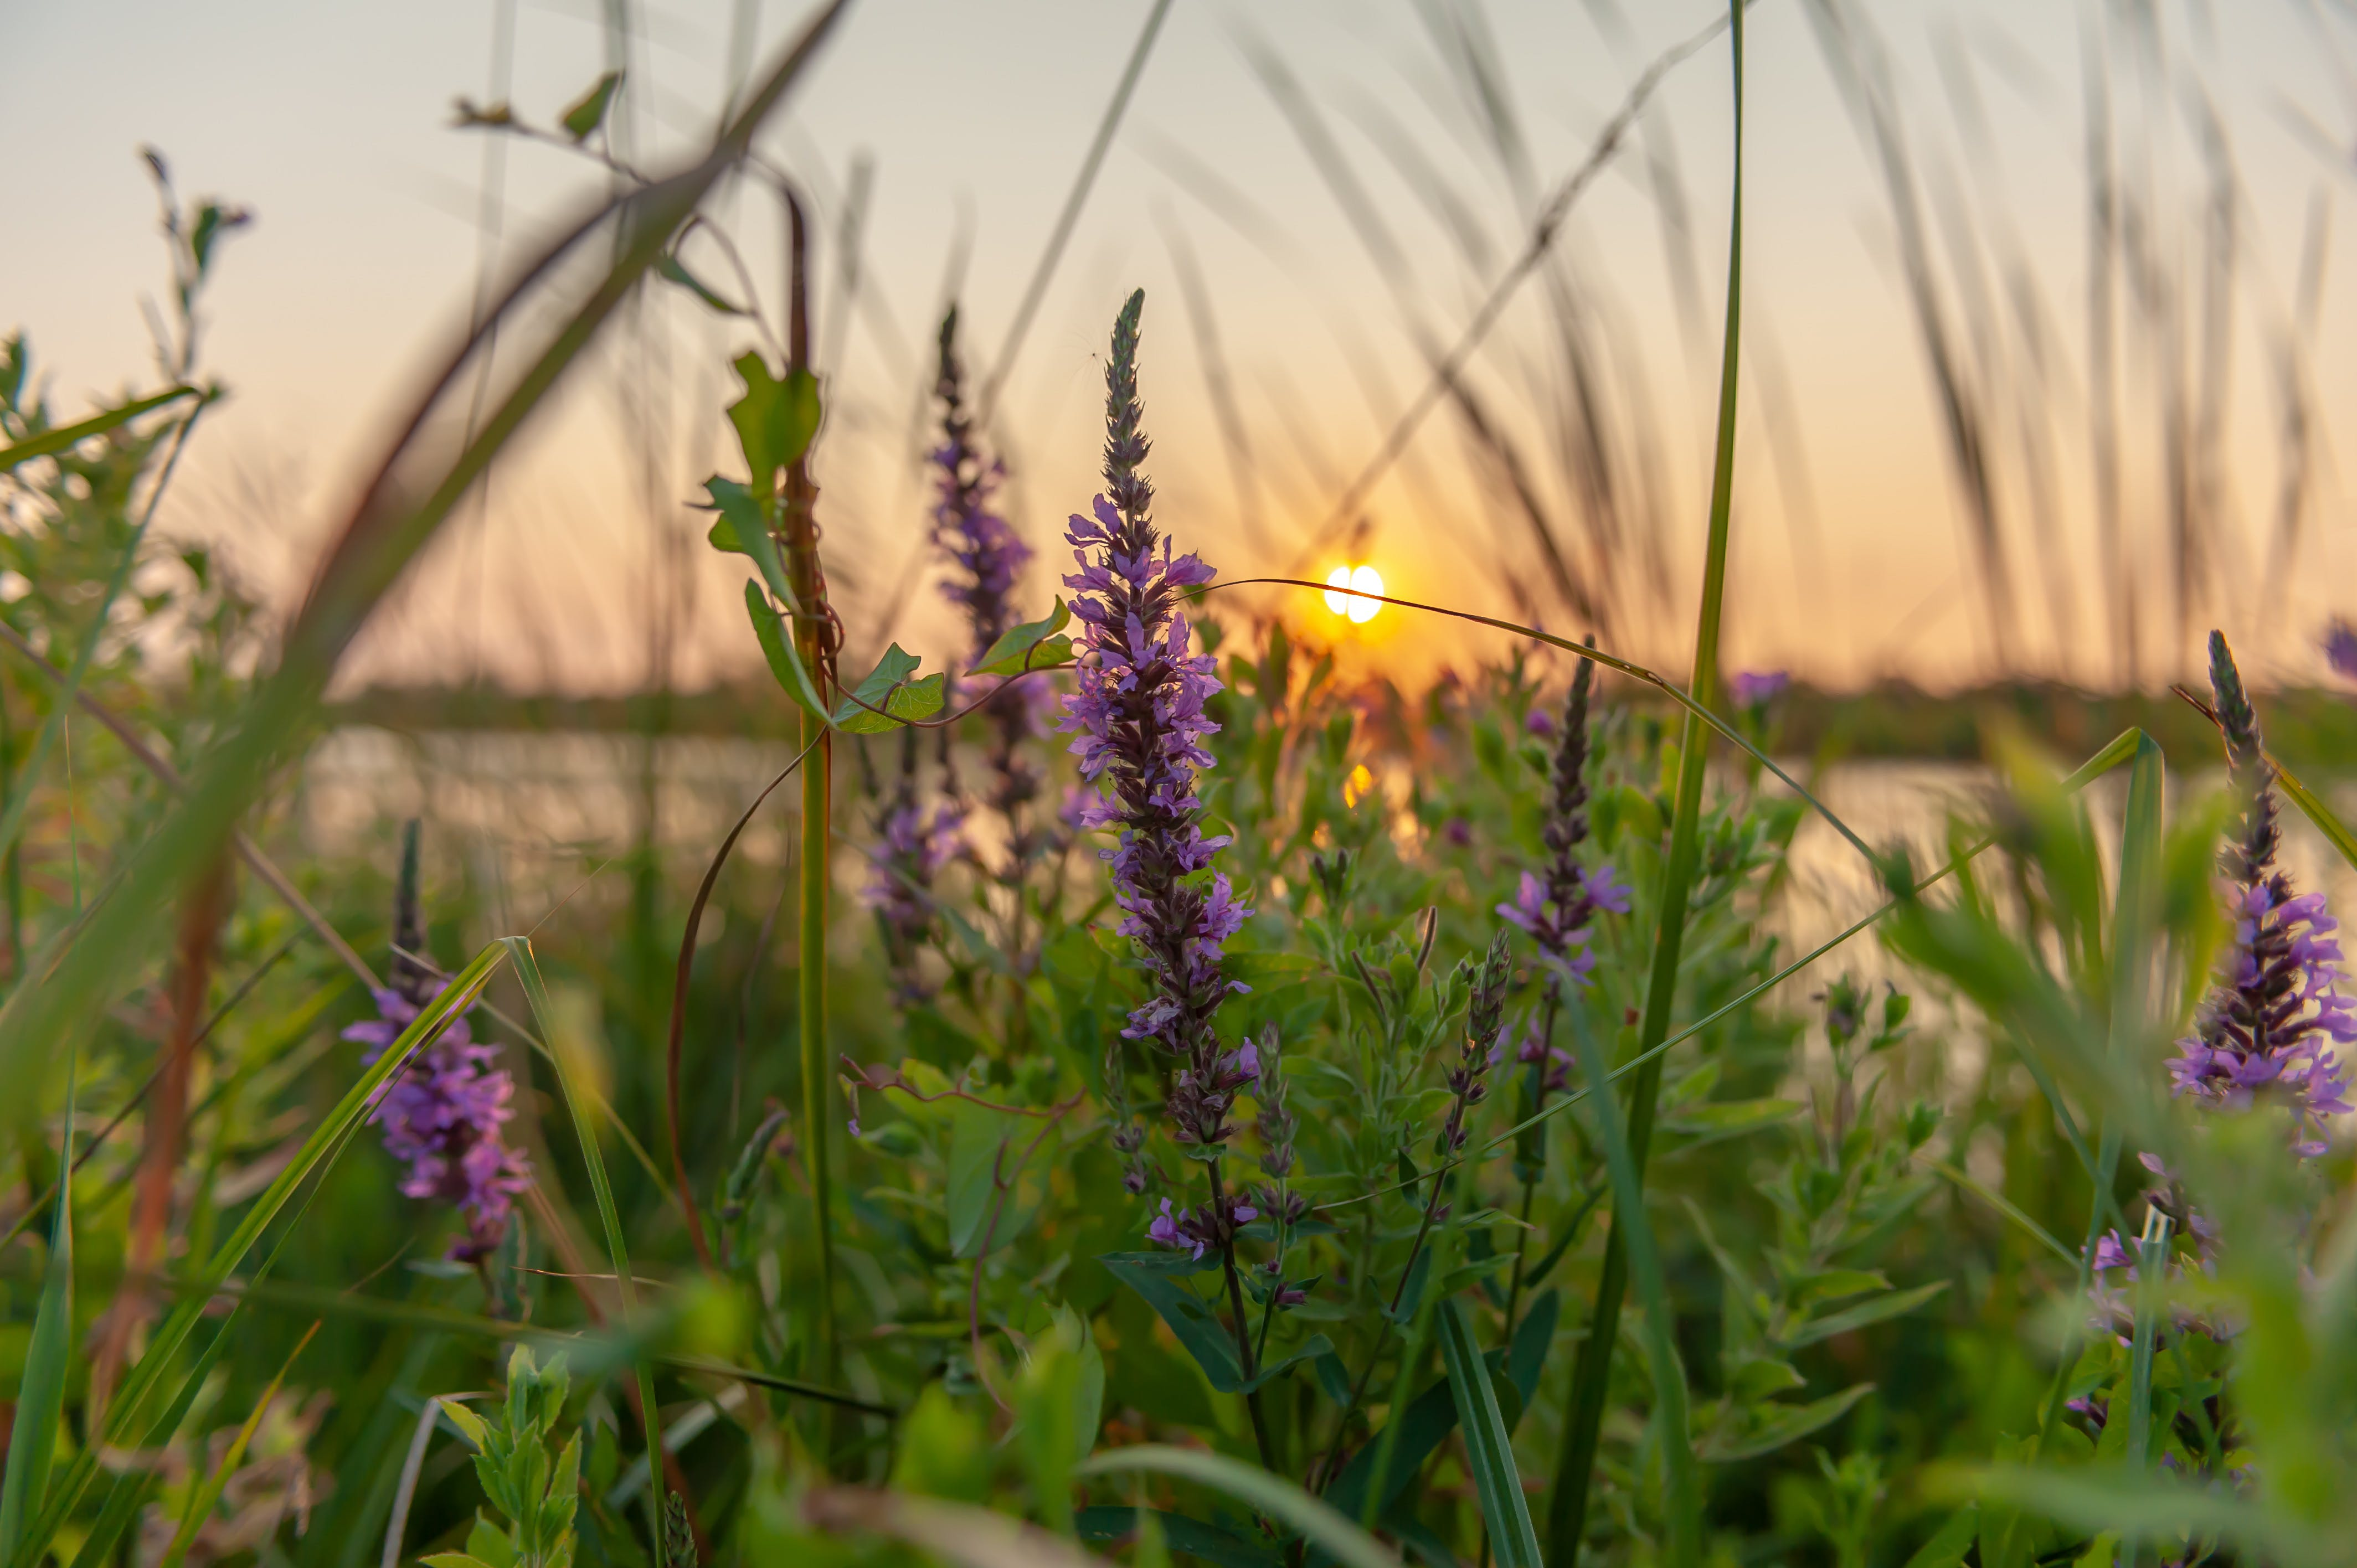 Purple Lavender Flowers Selective-focus Photography at Sunset